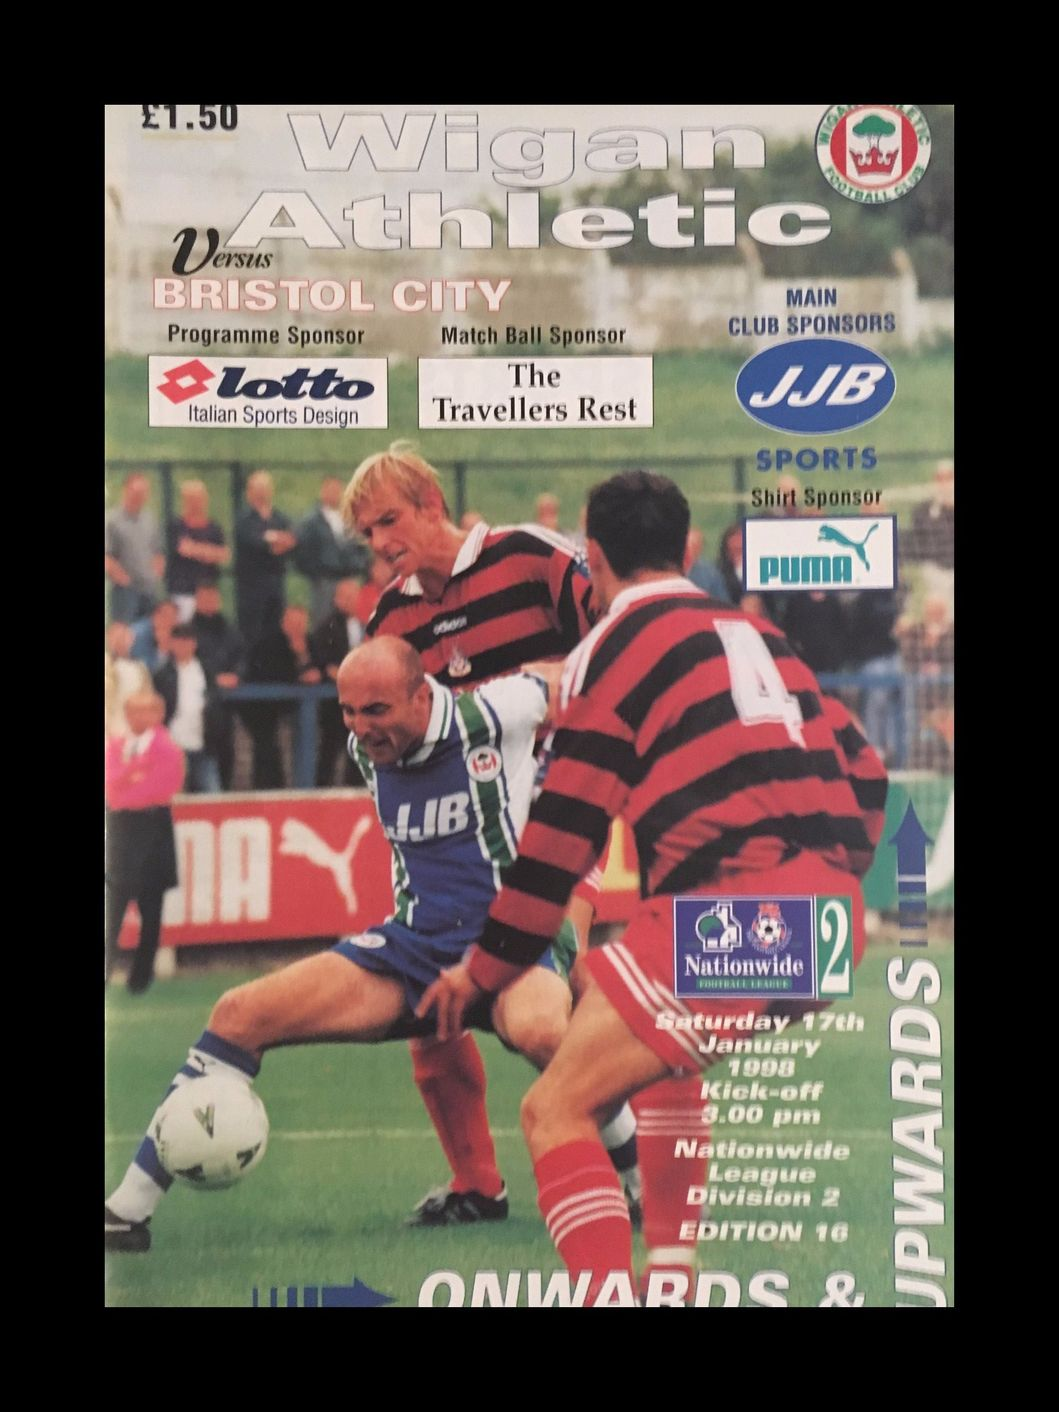 Wigan Athletic v Bristol City 17-01-1998 Programme